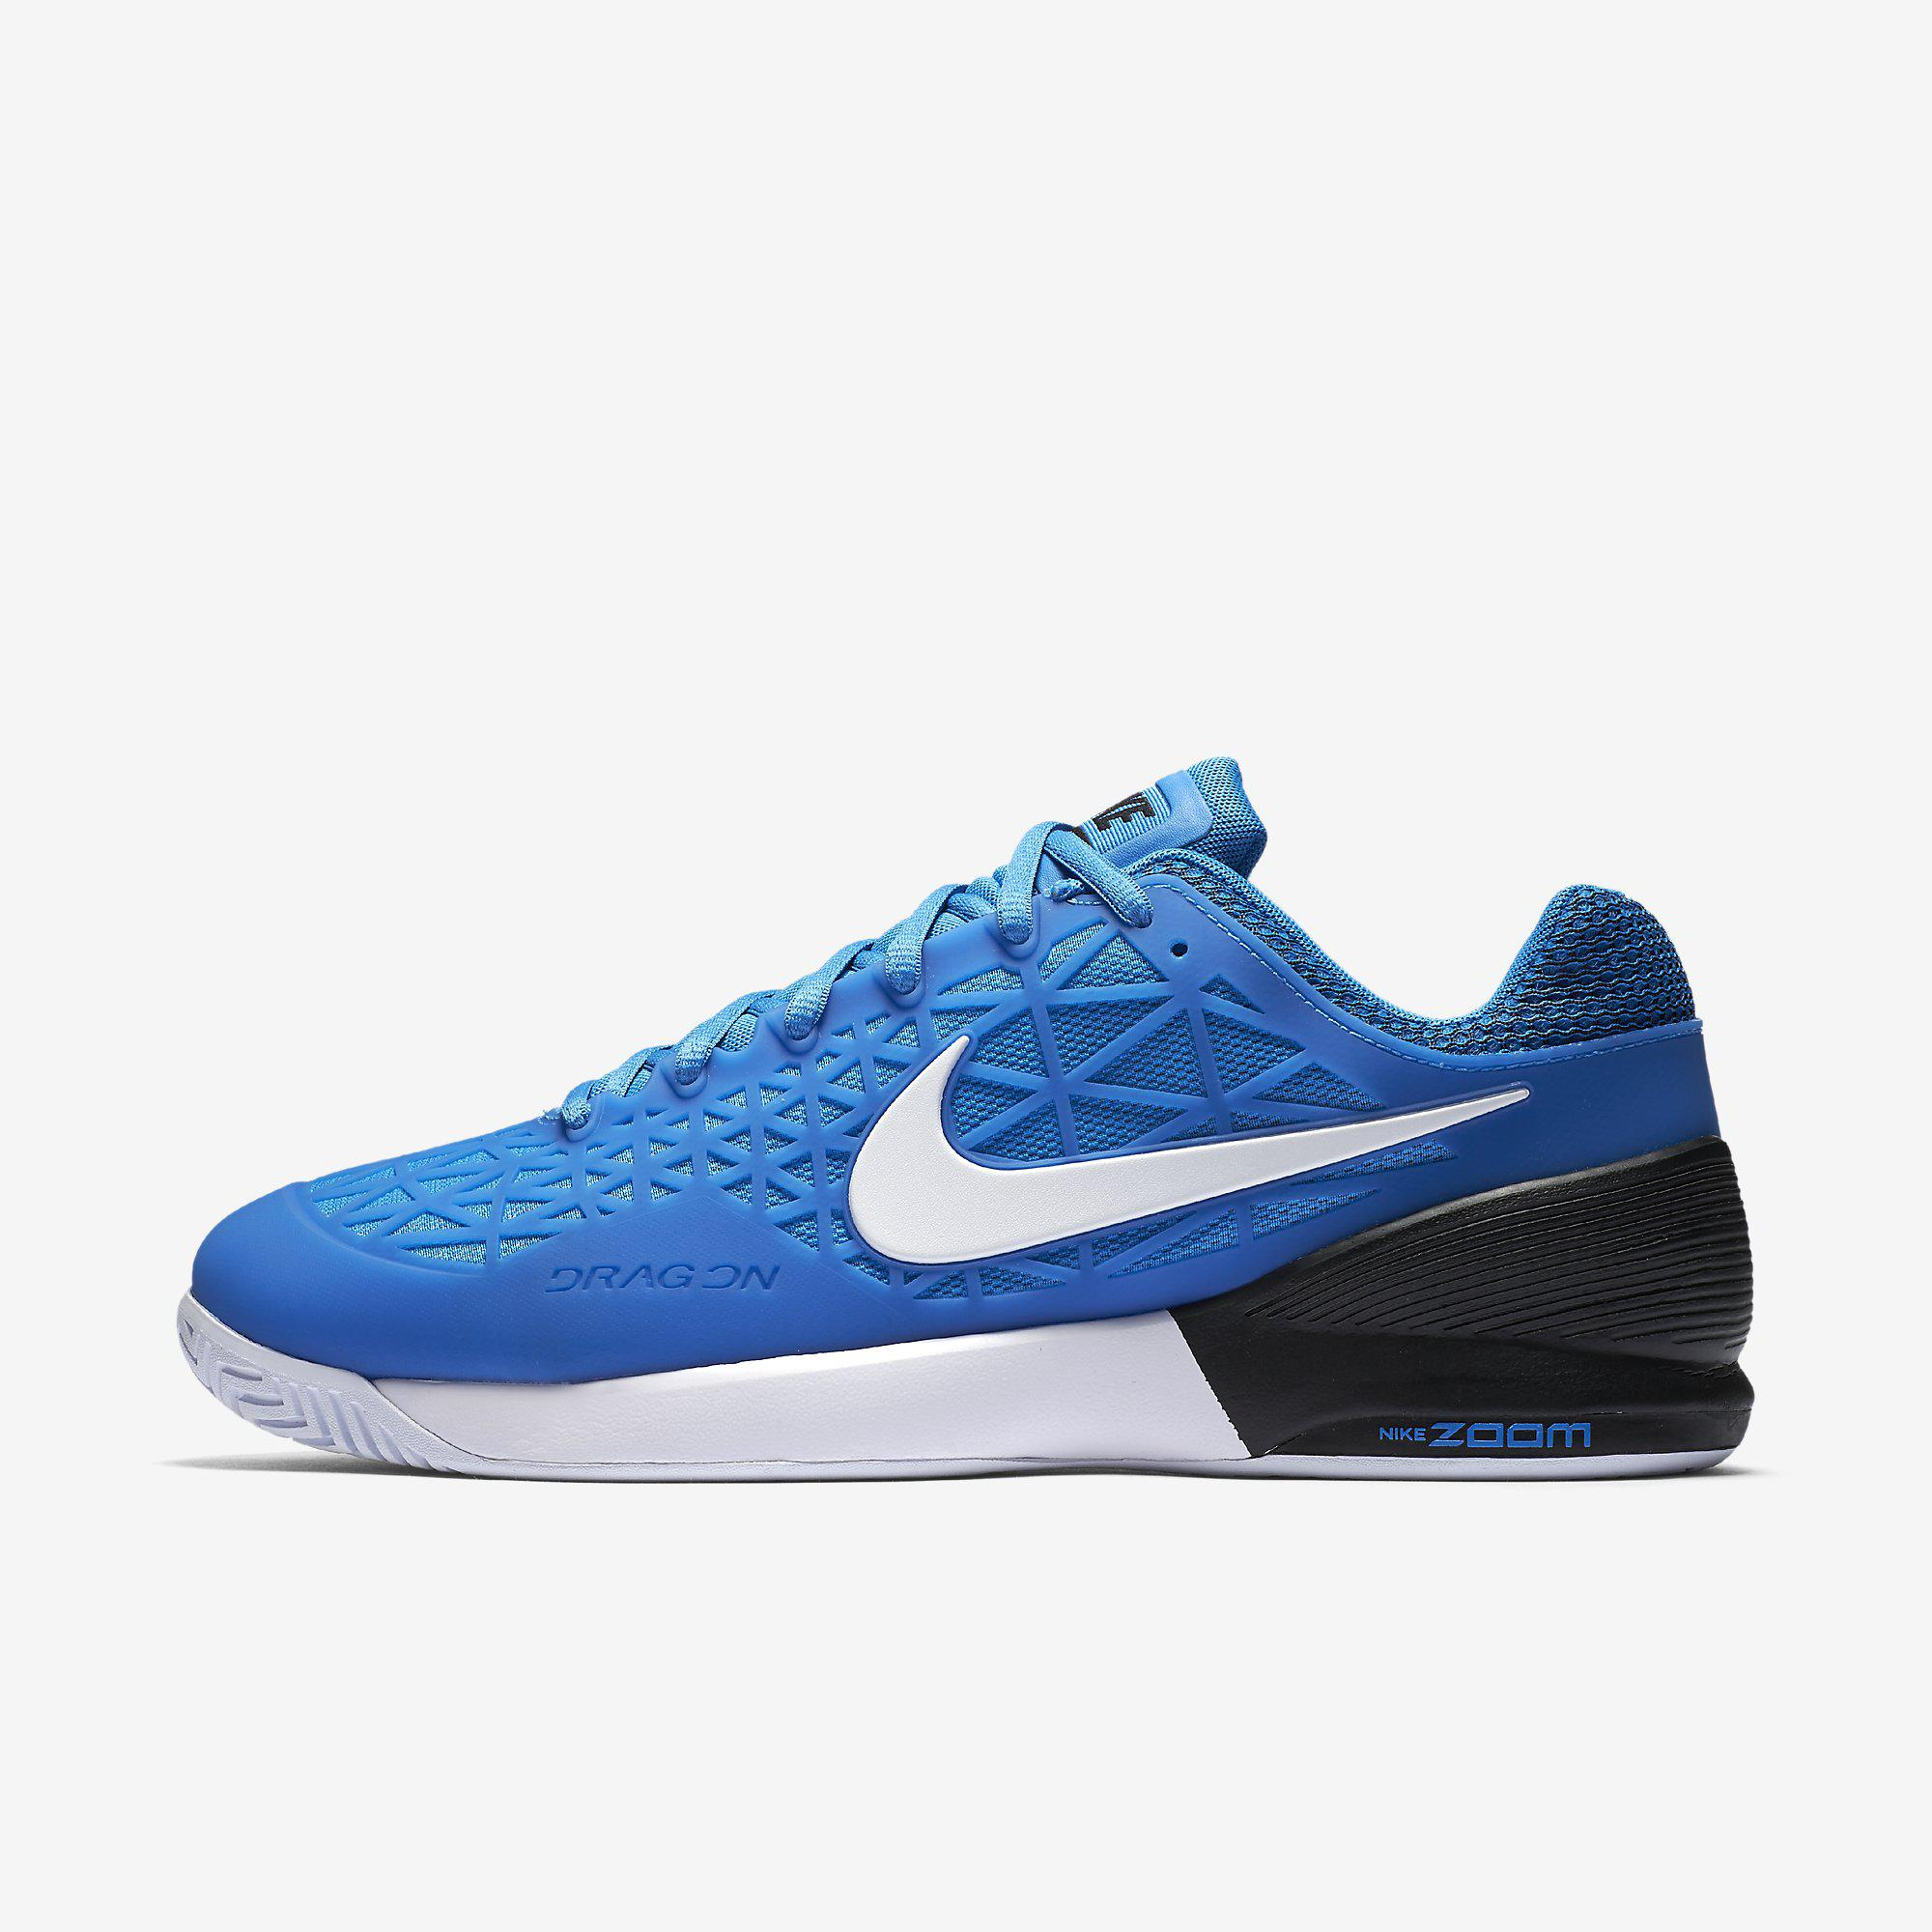 Nike Mens Zoom Cage 2 Tennis Shoes